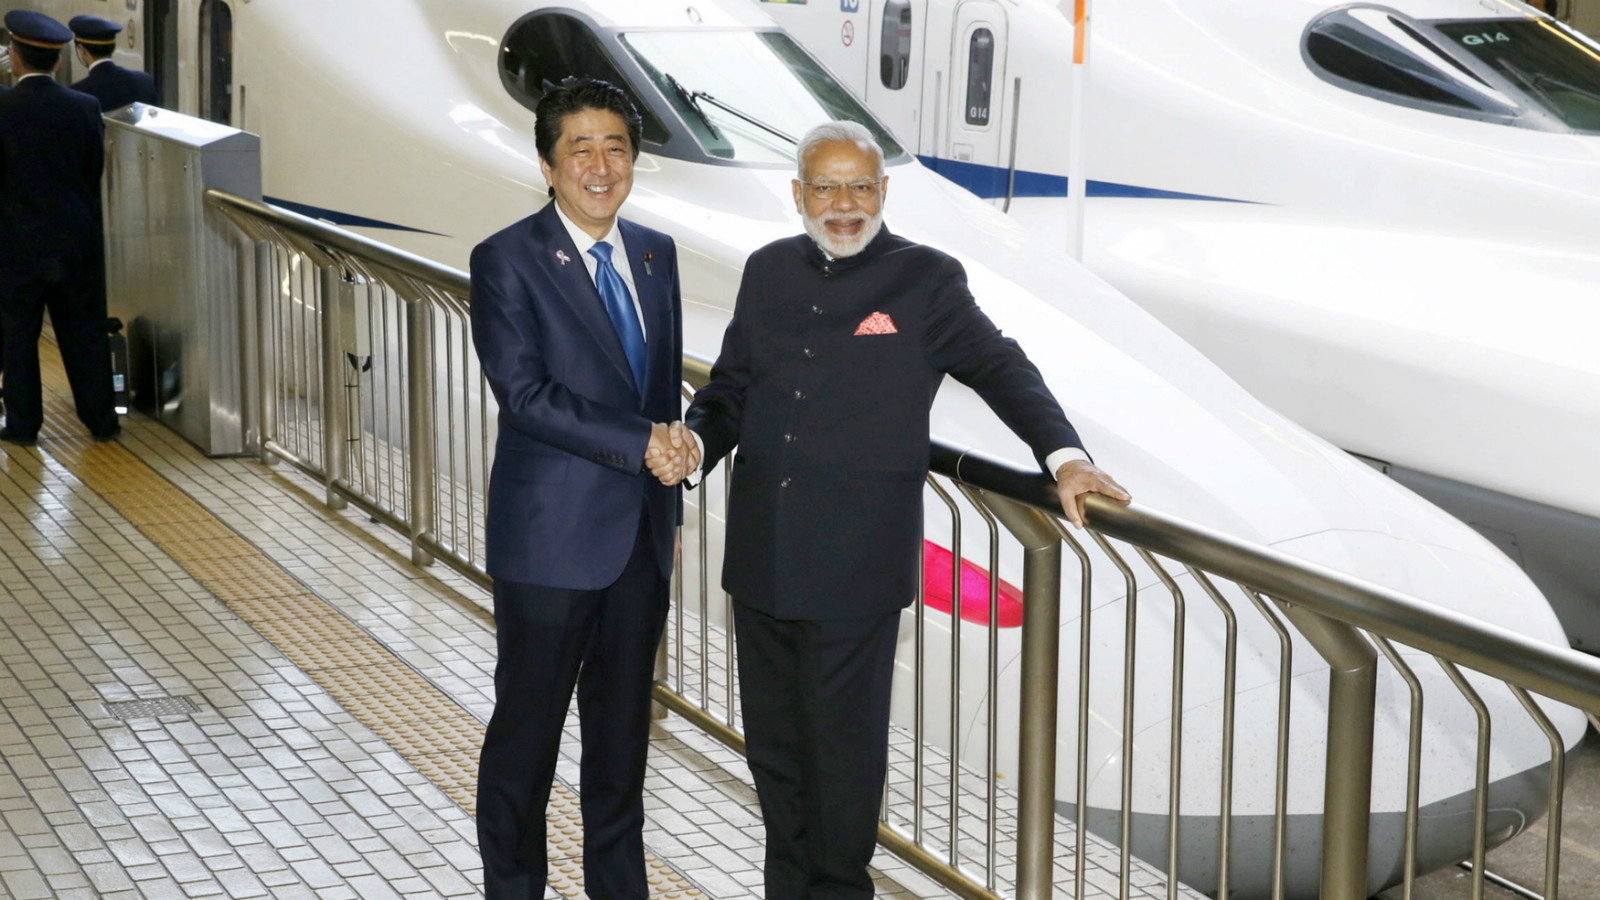 Indian Prime Minister Narendra Modi (R) and Japan's Prime Minister Shinzo Abe pose in front of a Shinkansen bullet train before heading for Hyogo prefecture at Tokyo Station, Japan November 12, 2016, in this photo taken by Kyodo. Mandatory credit